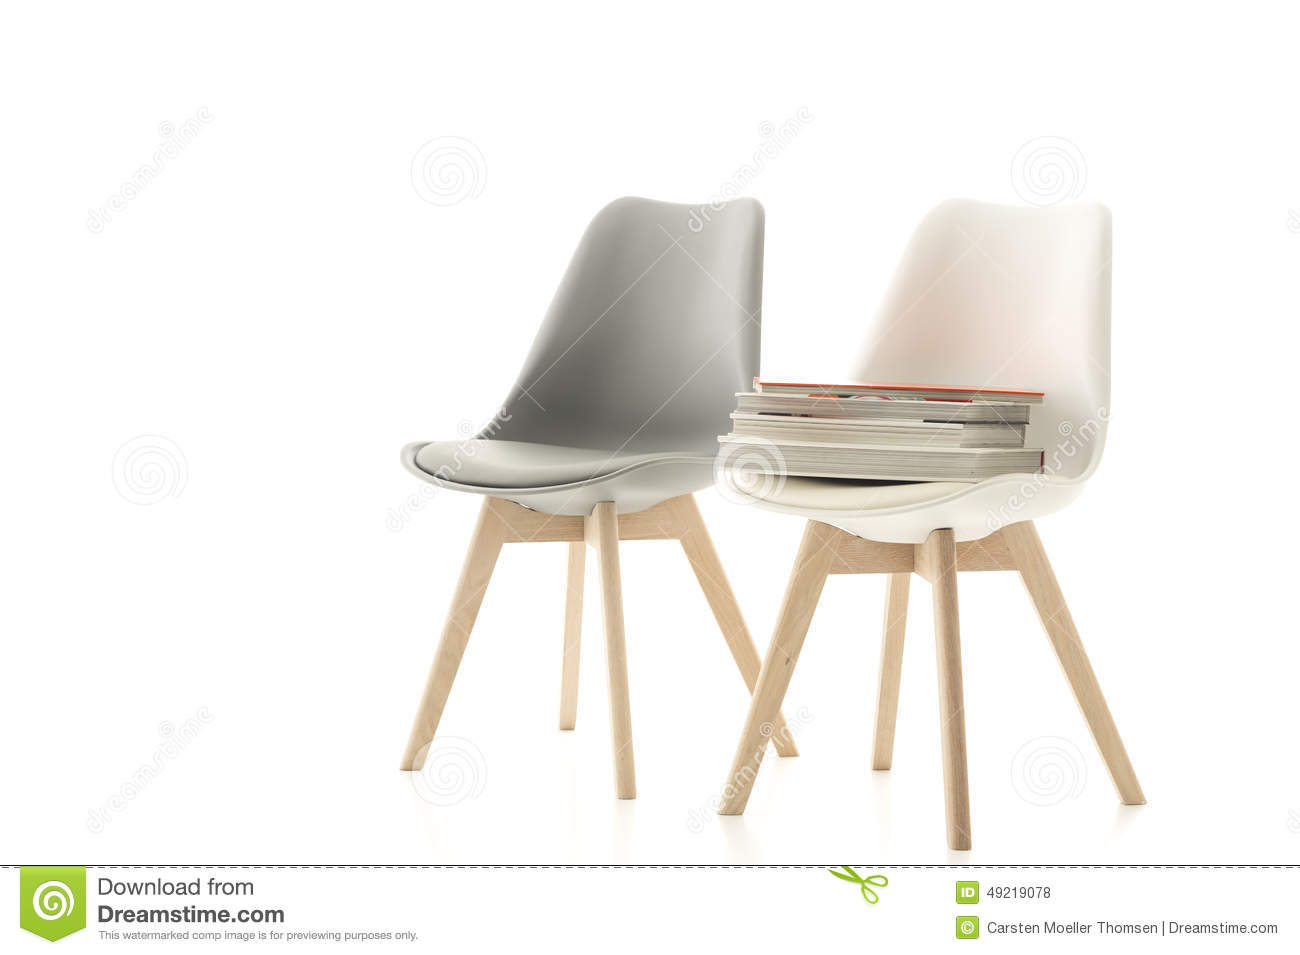 un assortiment de la chaise moderne grise et blanche photo